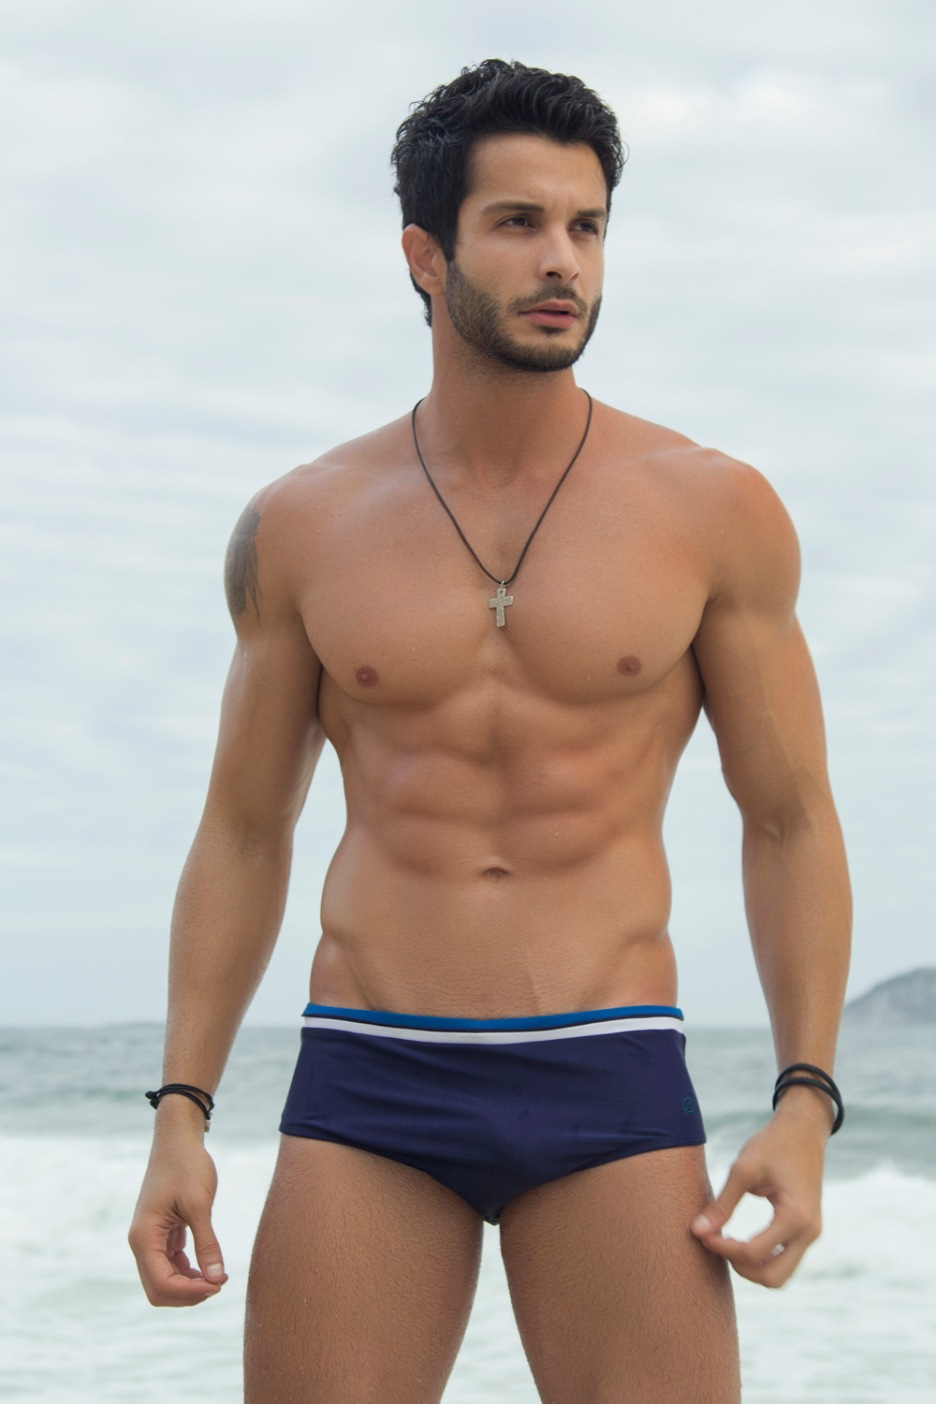 Fitness motivation with Brazilian fitness male model Gabriel Macieira in a beach session taken by Gustavos Bastos.